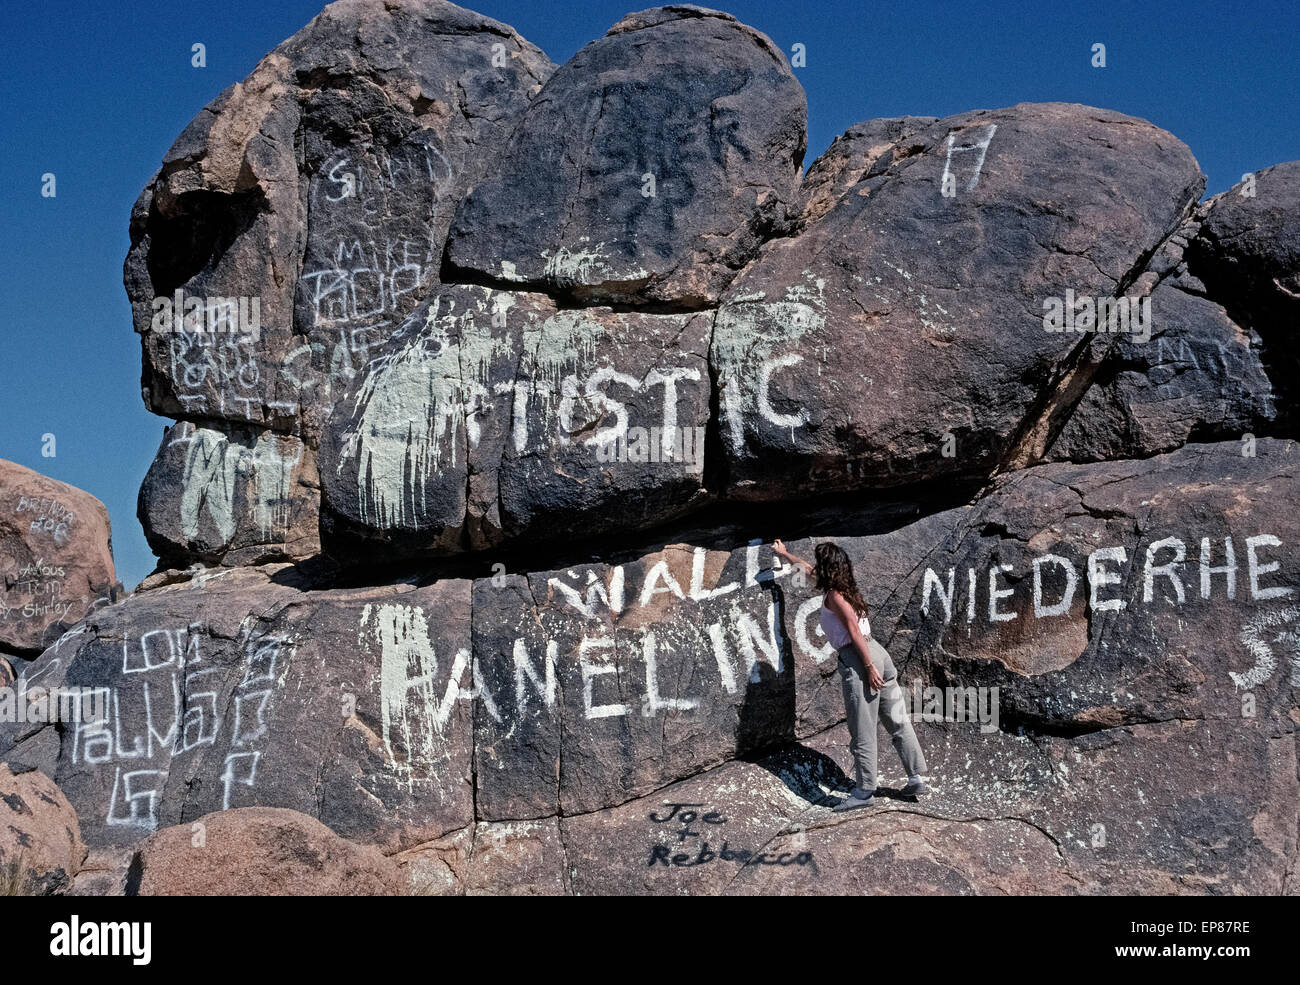 Spray-painted names and other graffiti deface the boulders and natural scenery in the desolate Mojave Desert near Johnson Valley in San Bernardino County in Southern California, USA. Cans of white, black or colored aerosol paints are commonly used to disfigure the rocks without any artistic effort often seen with   graffiti in urban areas. Stock Photo